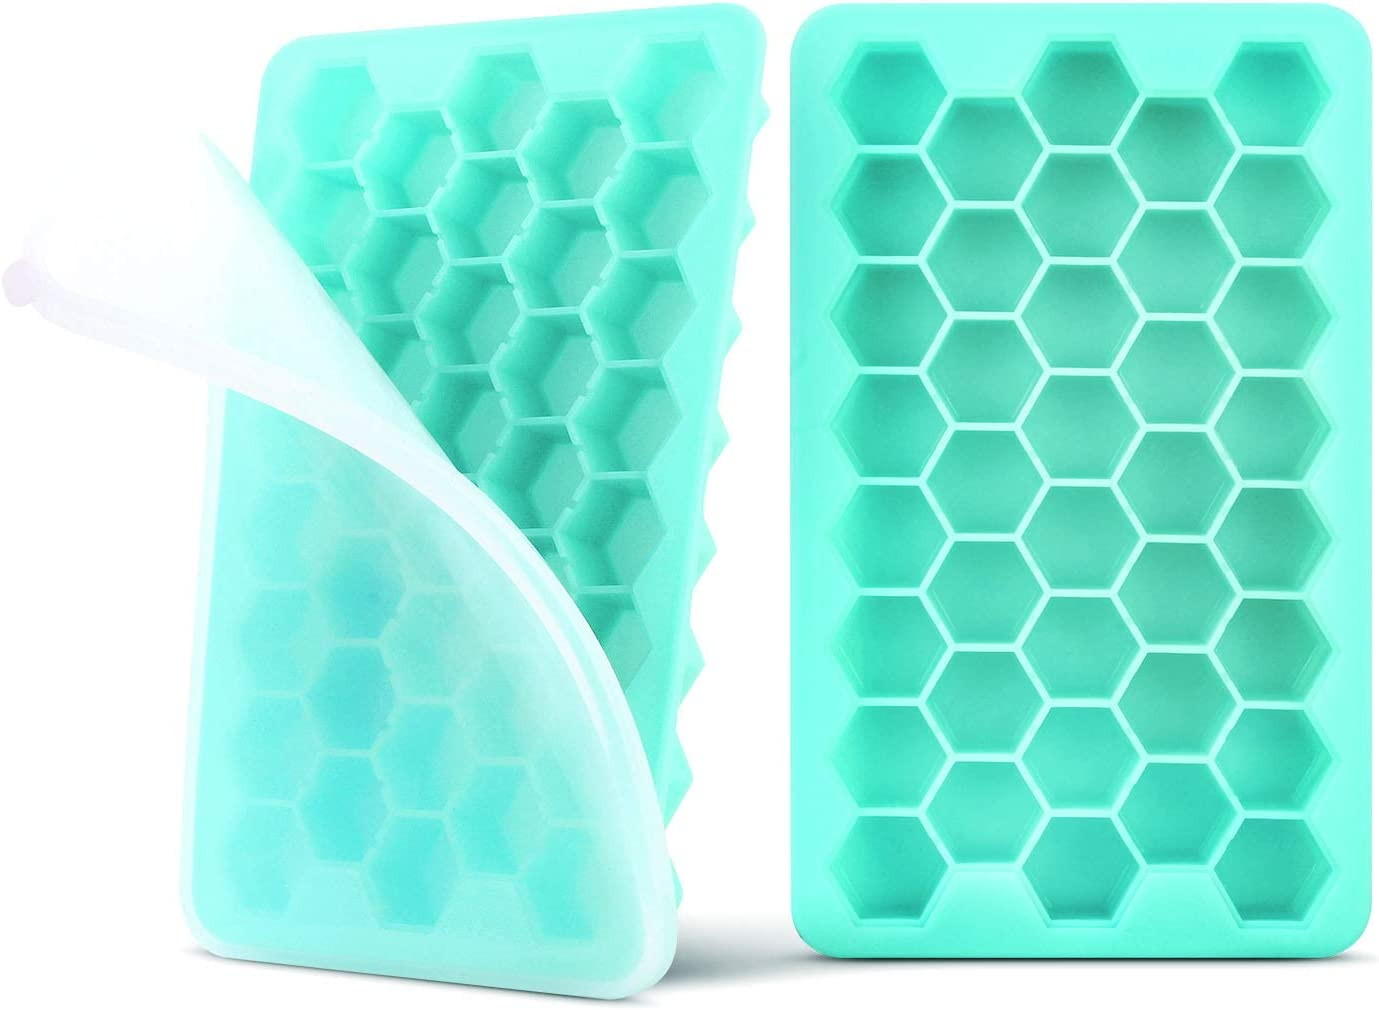 Ice Cube Trays with Lids Easy Release Silicone ZTXPRO BPA FREE 78 Cubes Flexible Ice Cube Molds for Drinks, Beverages, Whiskey, Cocktails and Baby Food Durable Dishwasher Safe (2 Pack) – Cyan Blue